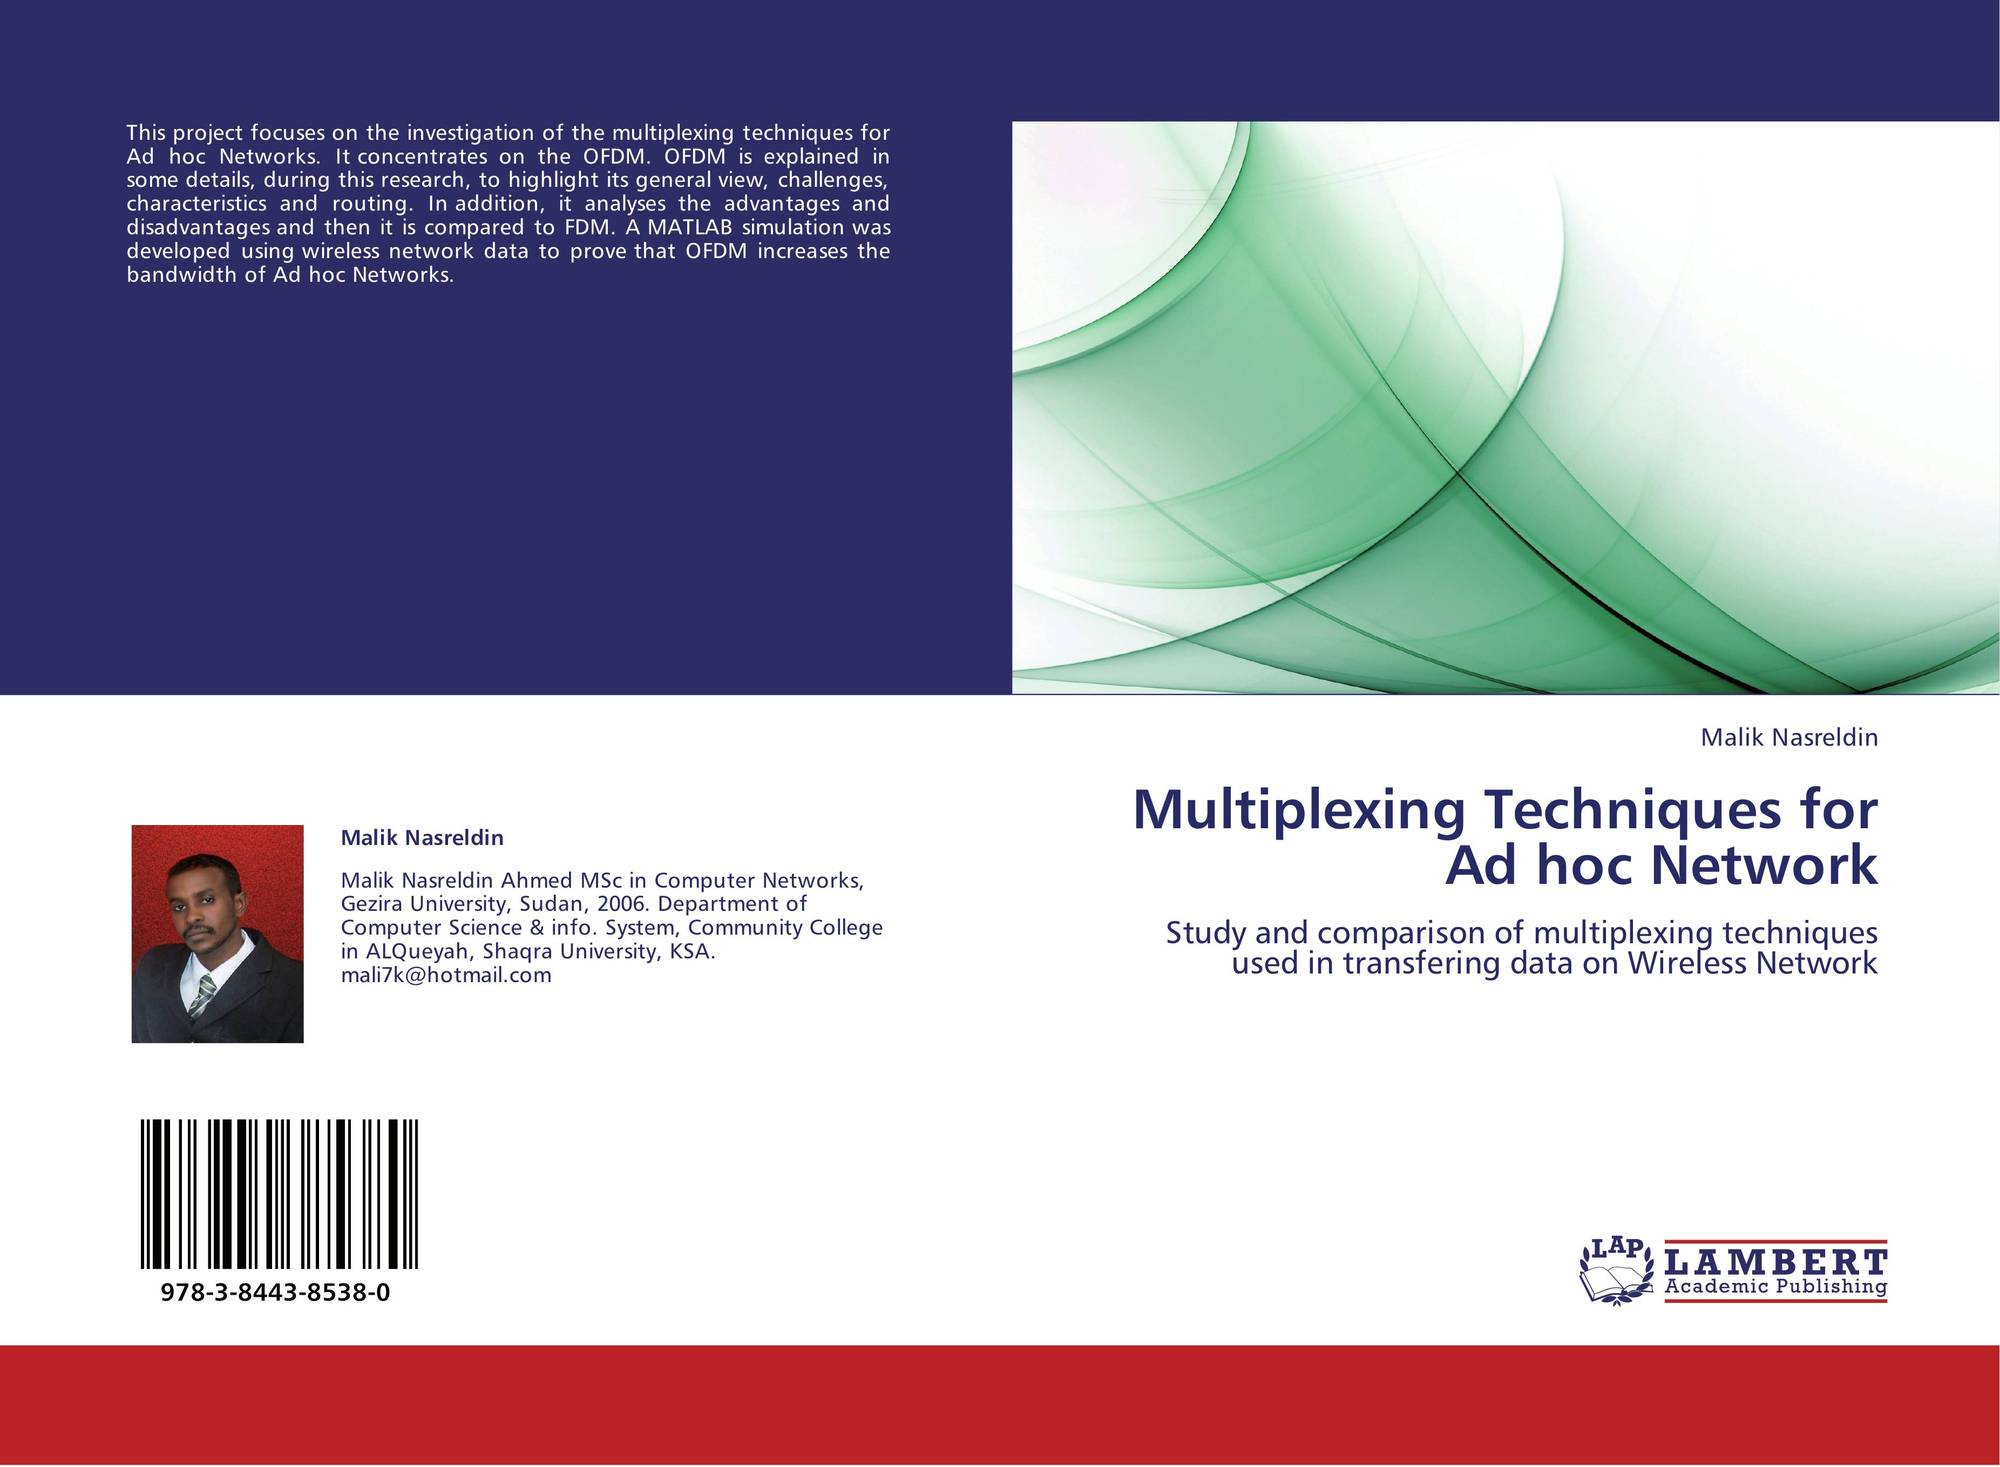 Multiplexing Techniques for Ad hoc Network, 978-3-8443-8538